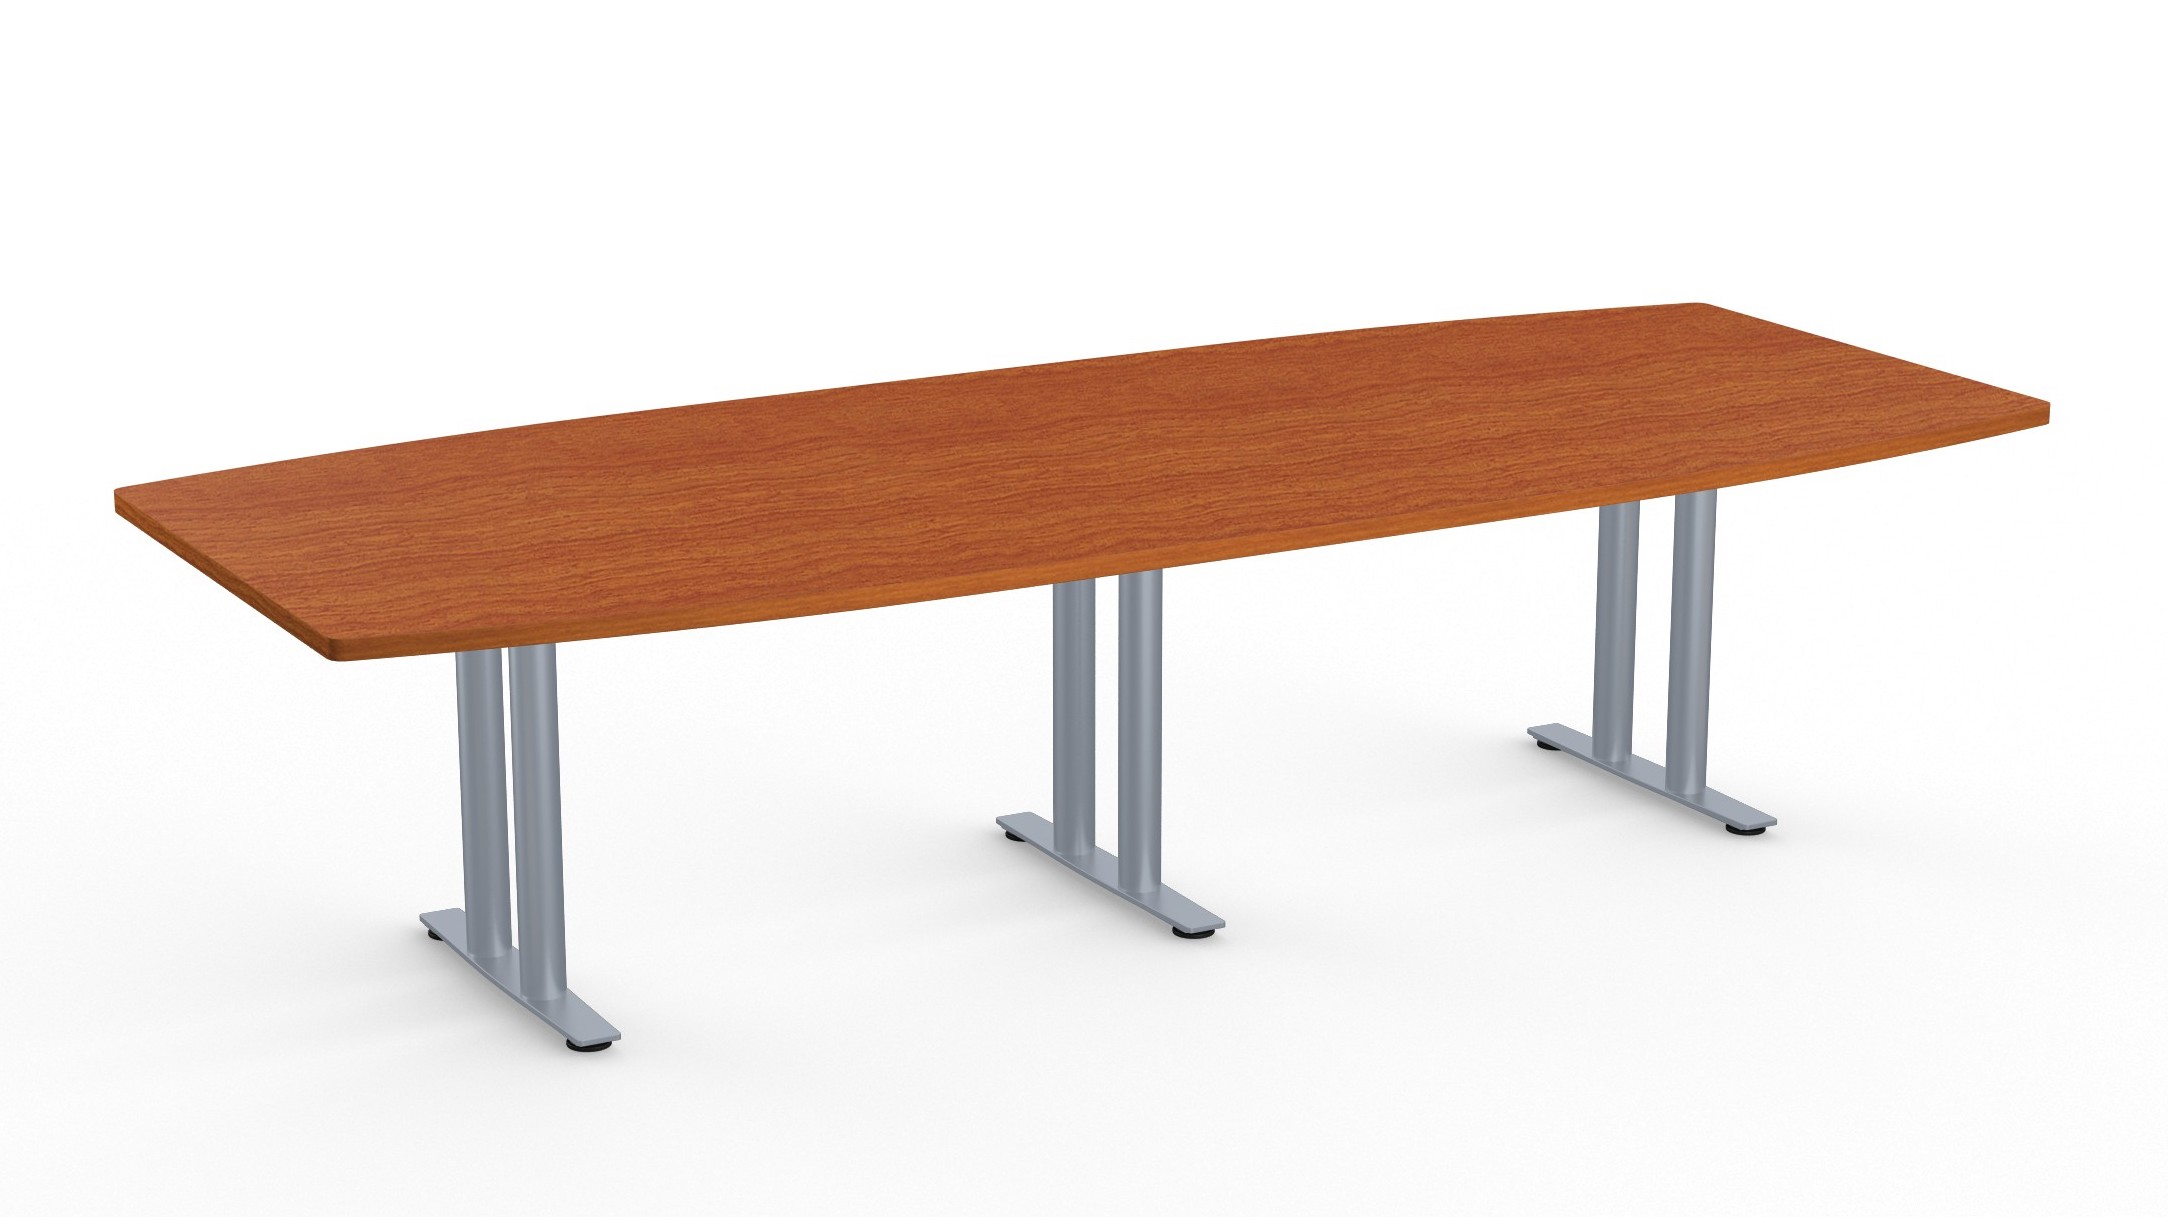 made in the usa boat shaped conference table